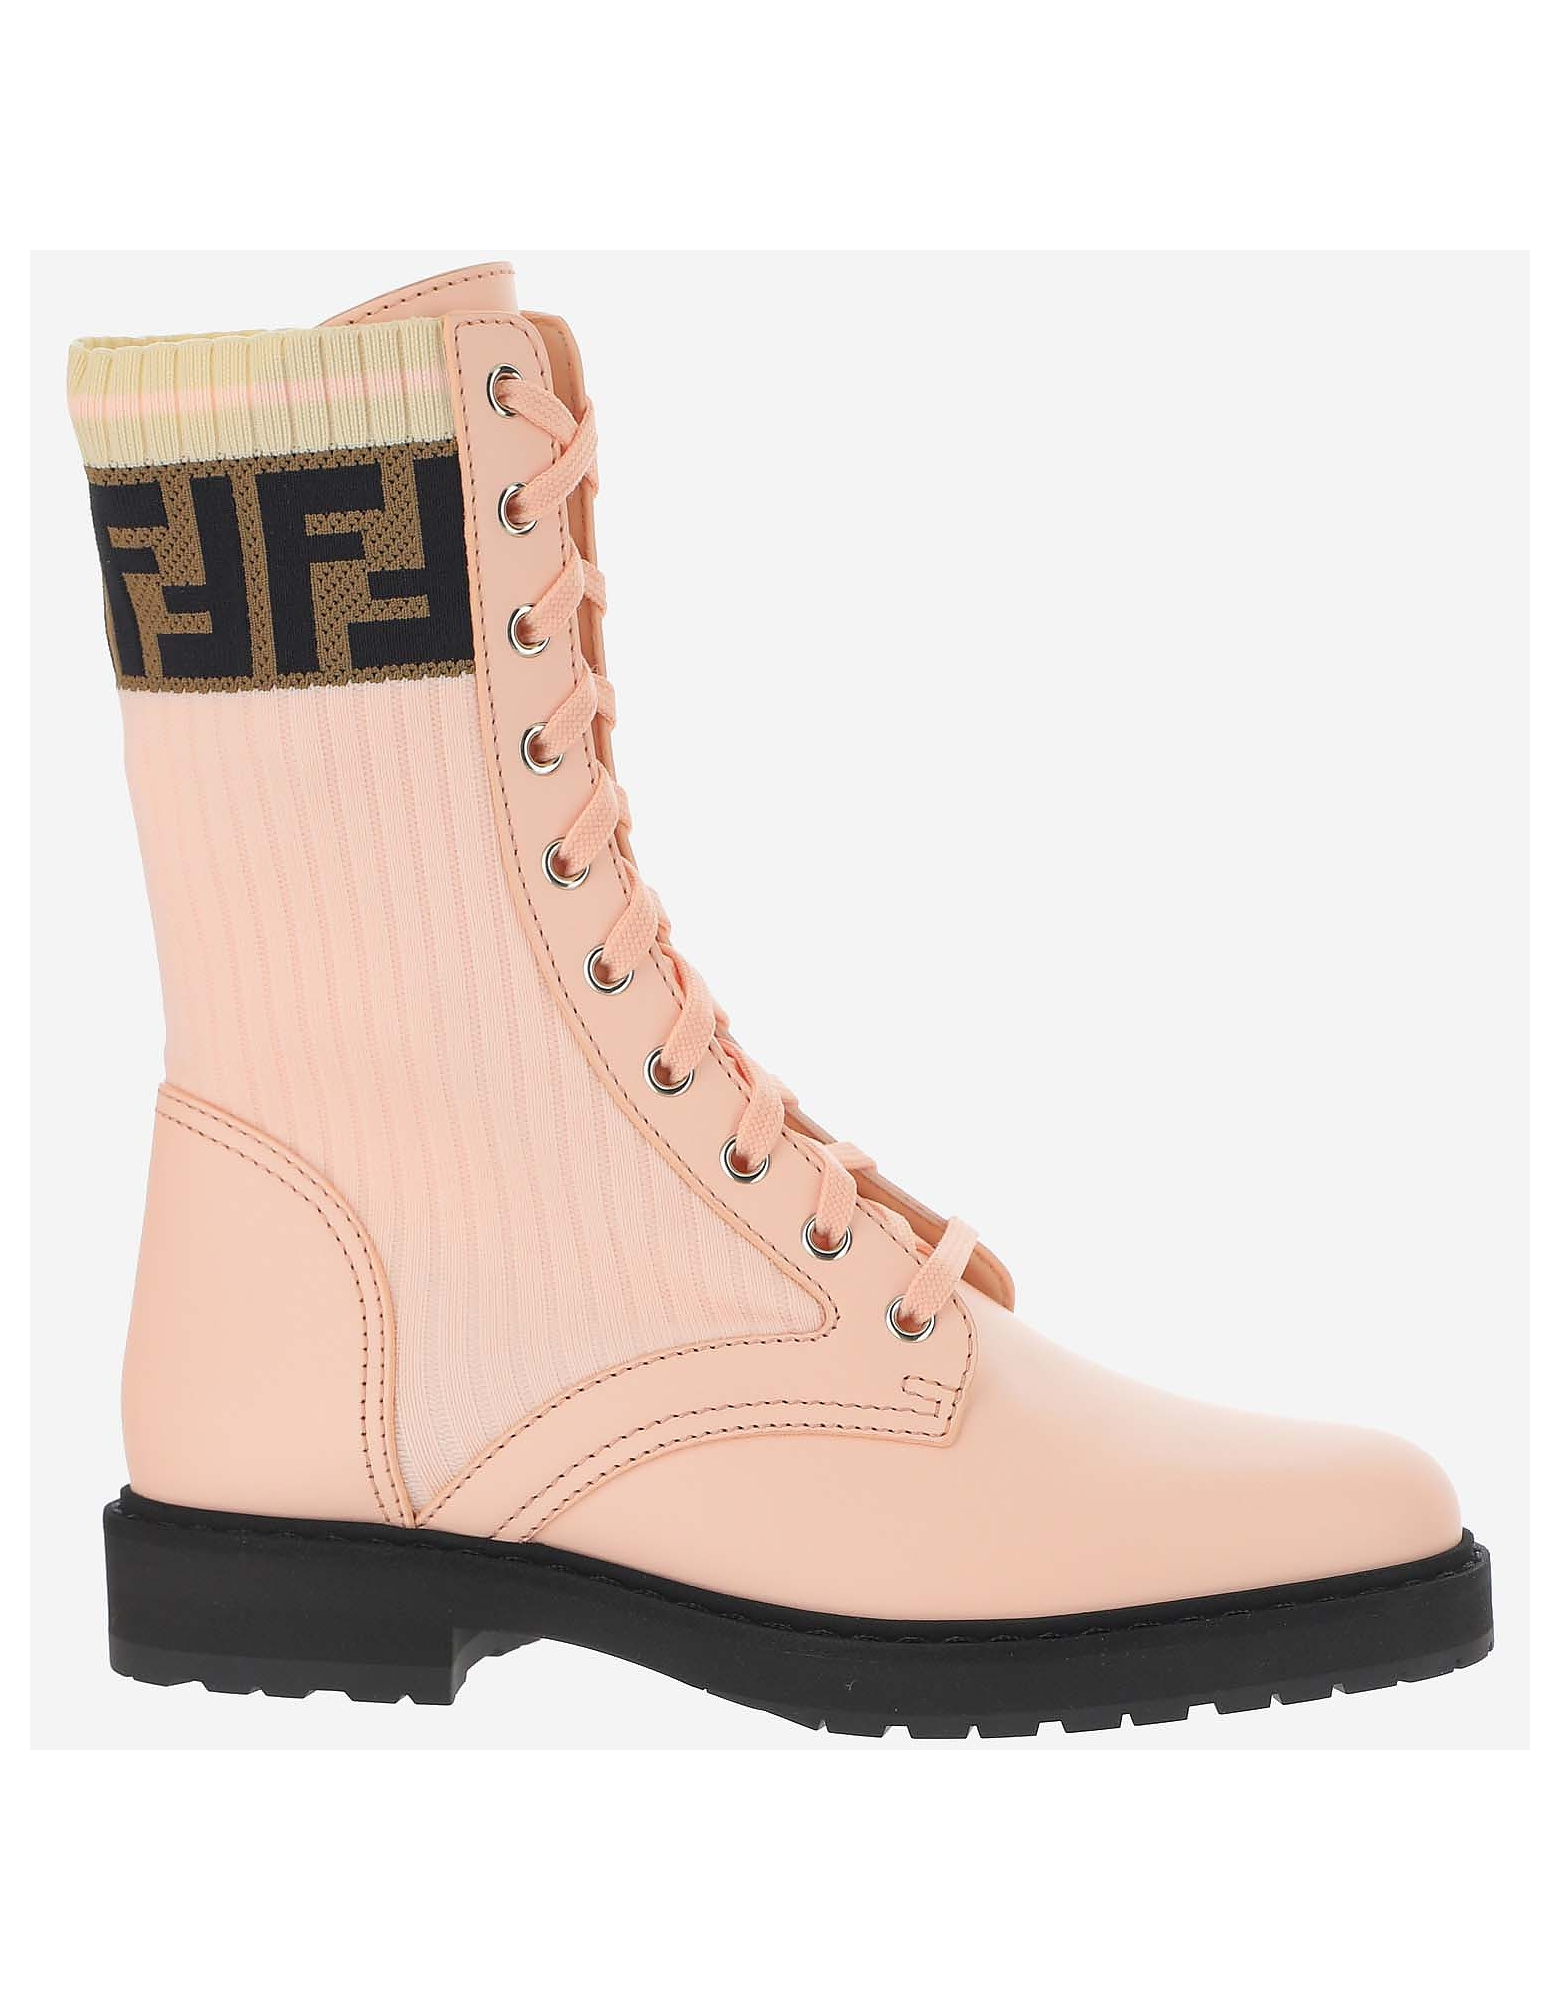 Fendi Designer Shoes, Pink Ankle Boots